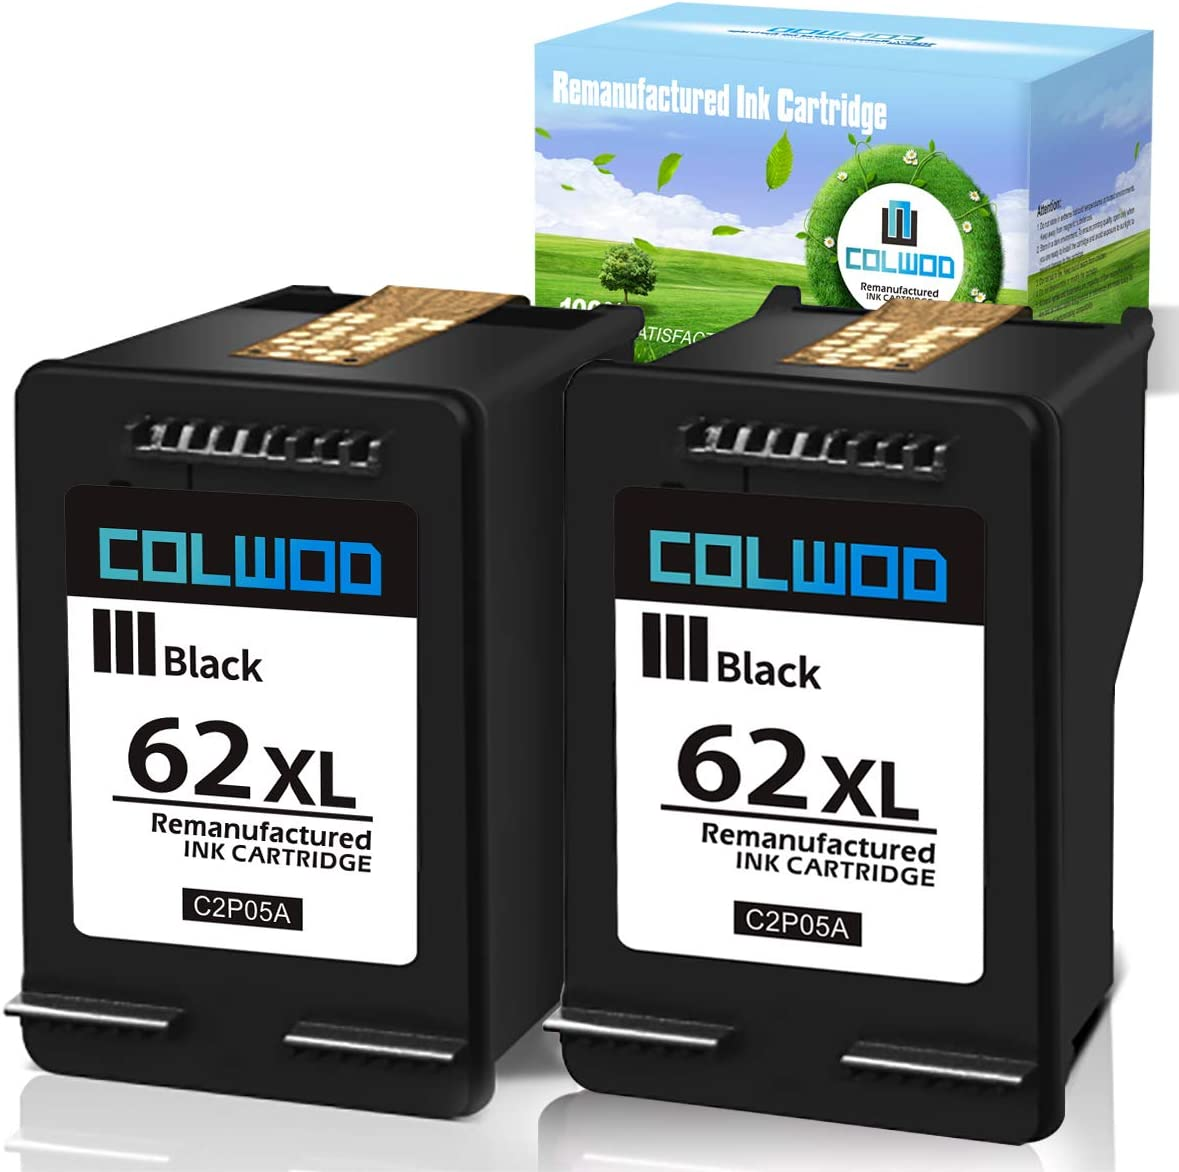 CLOWOD Remanufactured Ink Cartridge Replacement for HP 62XL 62 XL to use with Envy 5540 5640 5660 7644 7645 OfficeJet 5740 8040 OfficeJet 200 250 Series Printer (2 Black)